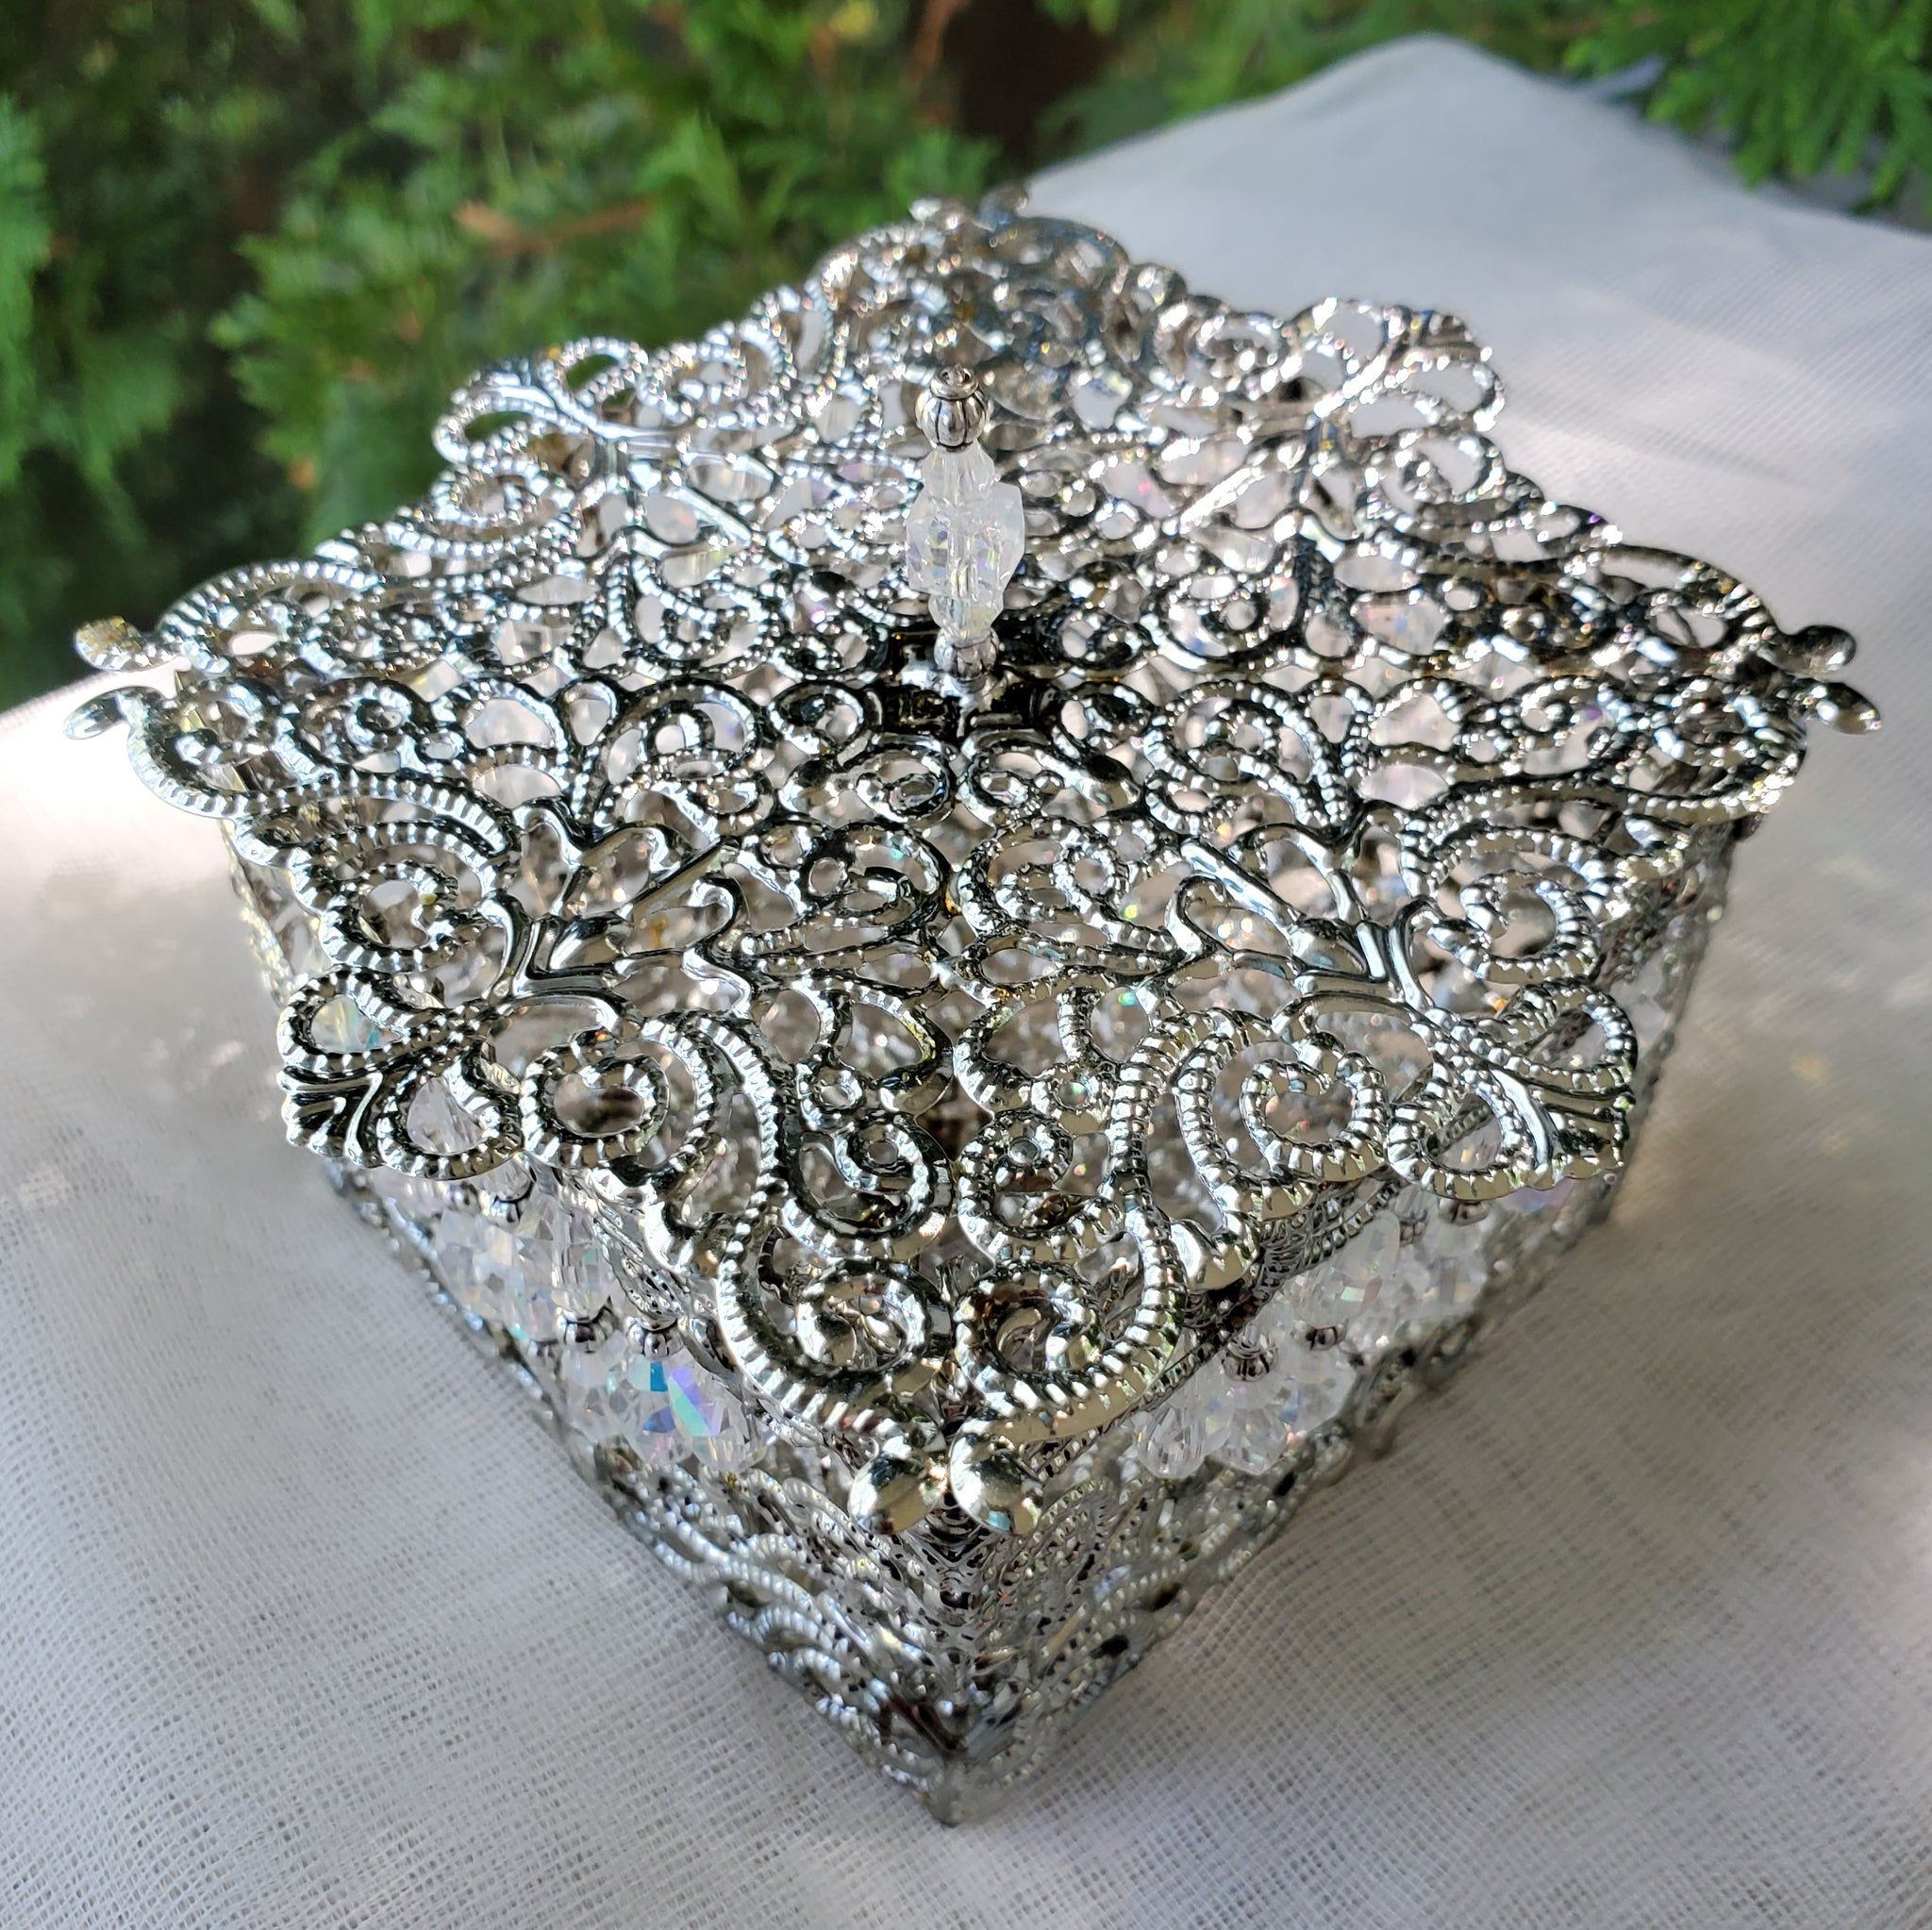 Silver Filigree Victorian Trinket Box with Abacus Crystals